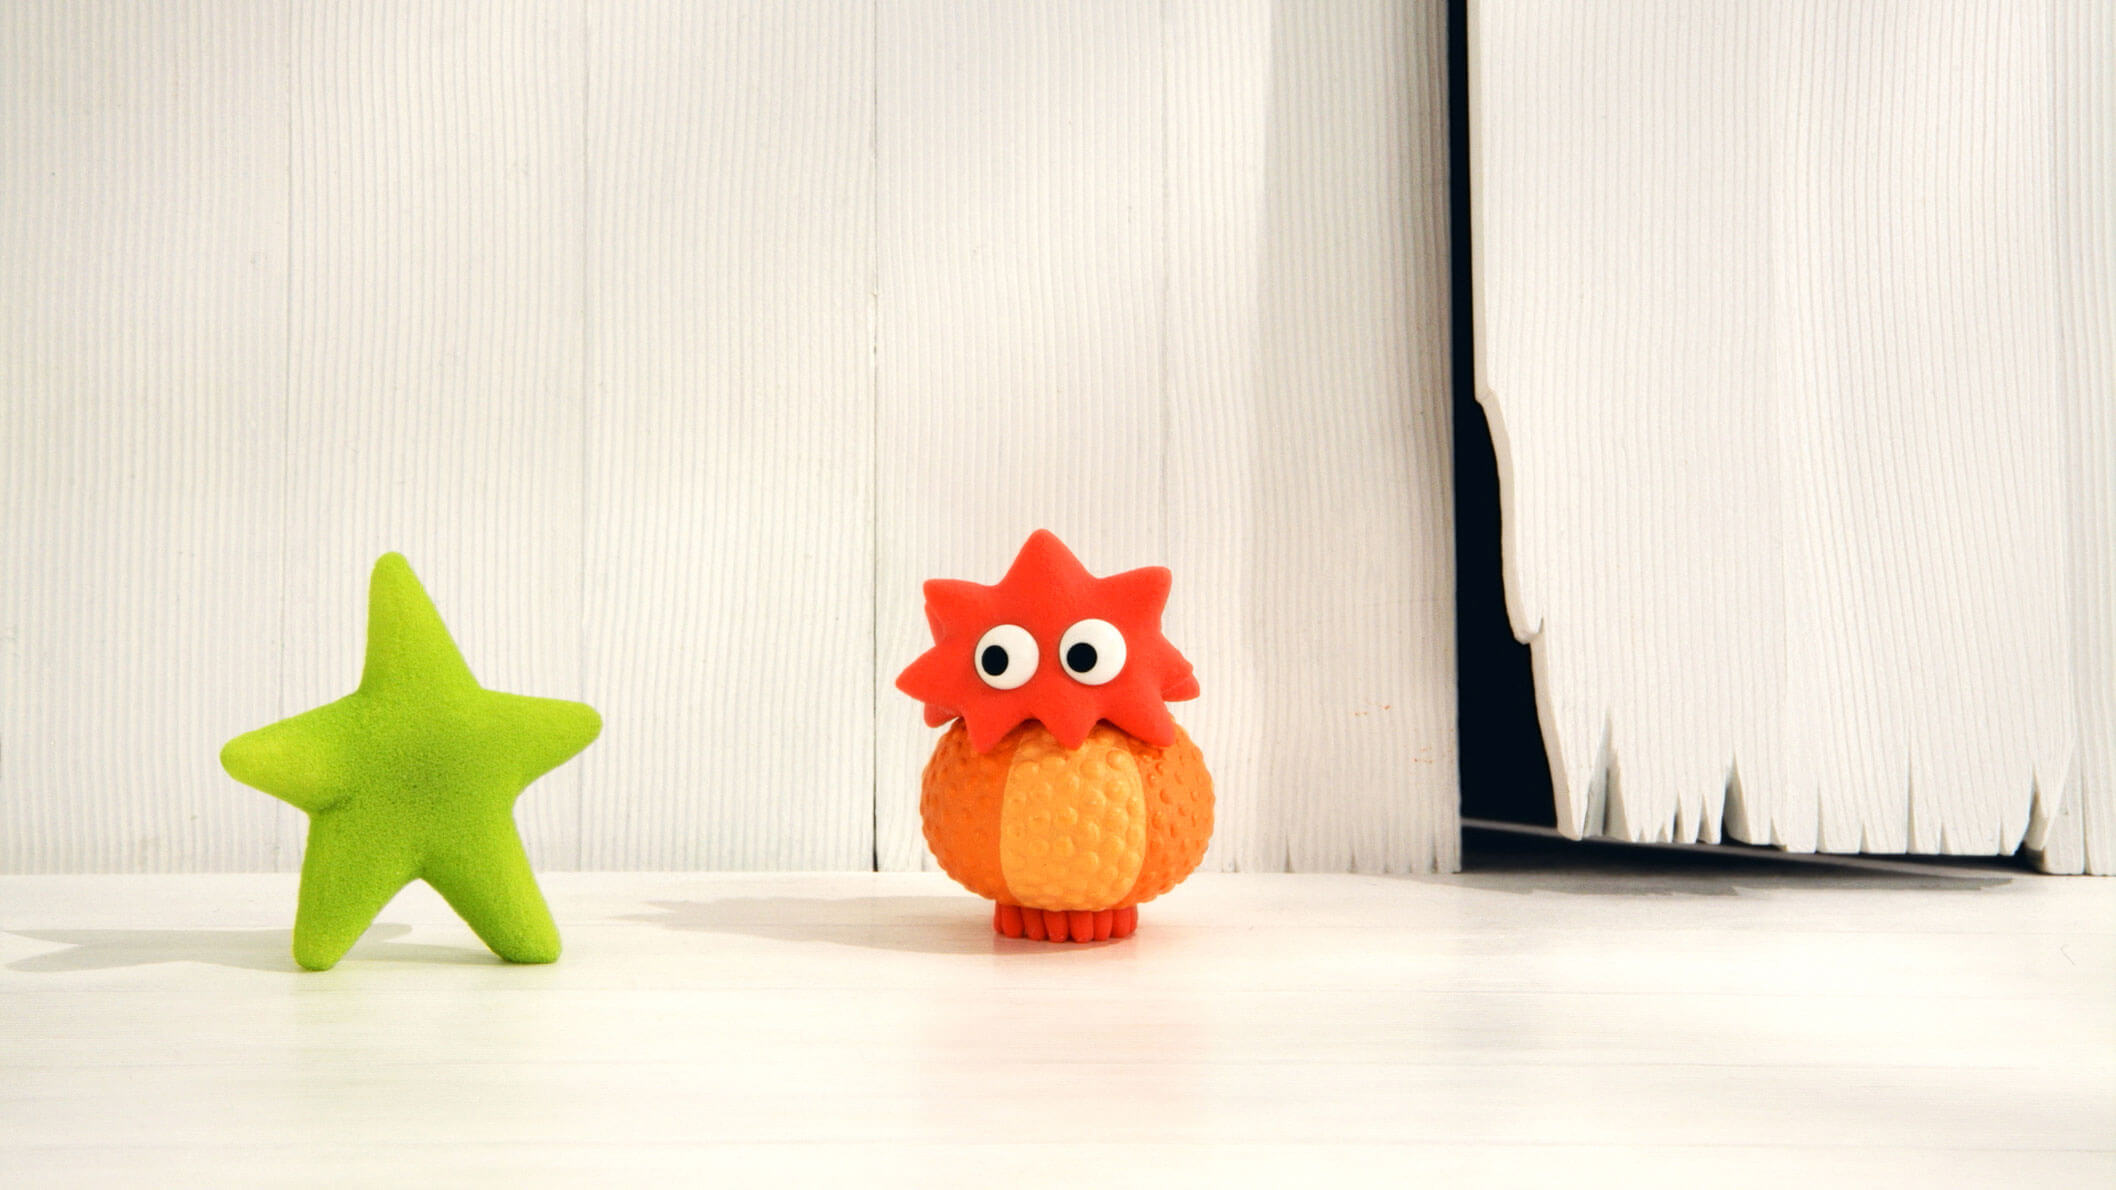 A small red character with a round body and star-shaped head standing in front of a white wall and beside a green star on the left.